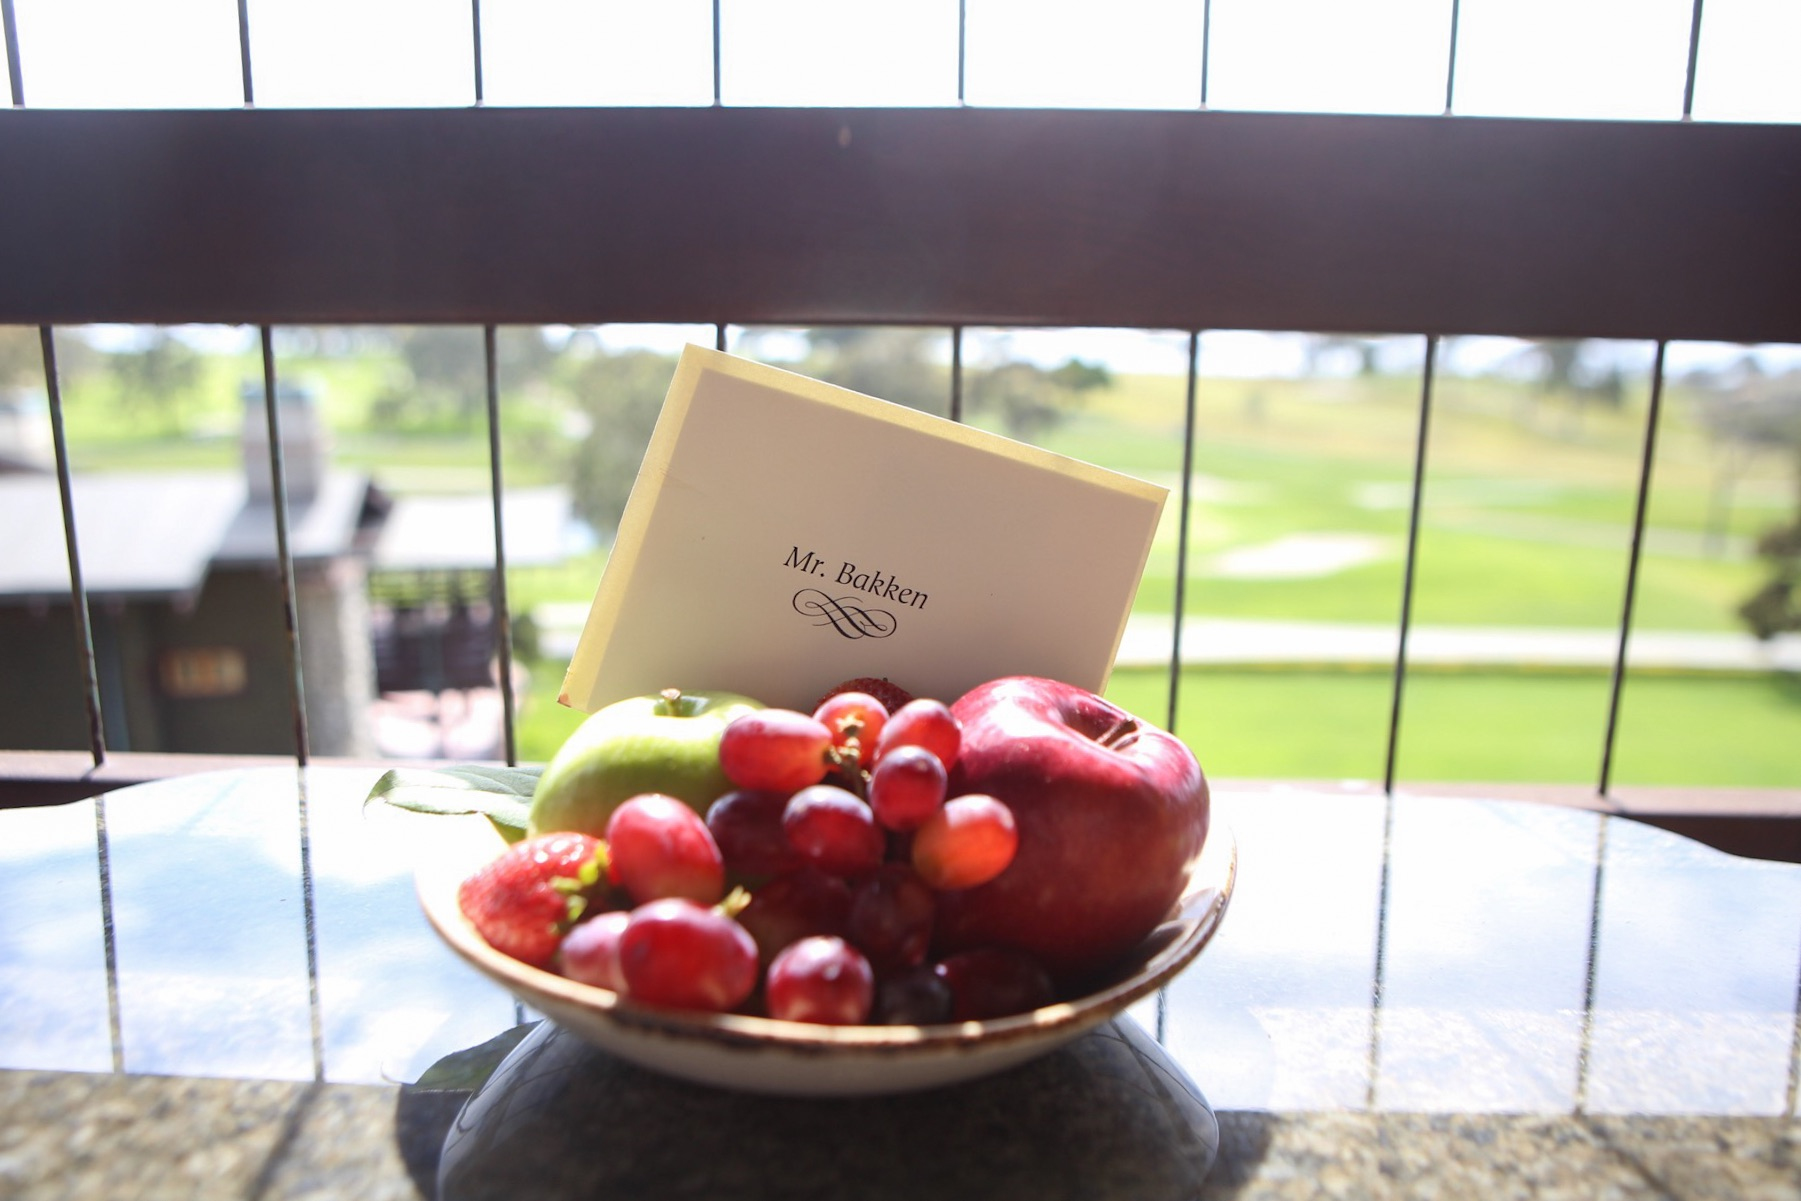 A welcome note and fruit basket from The Lodge at Torrey Pines.